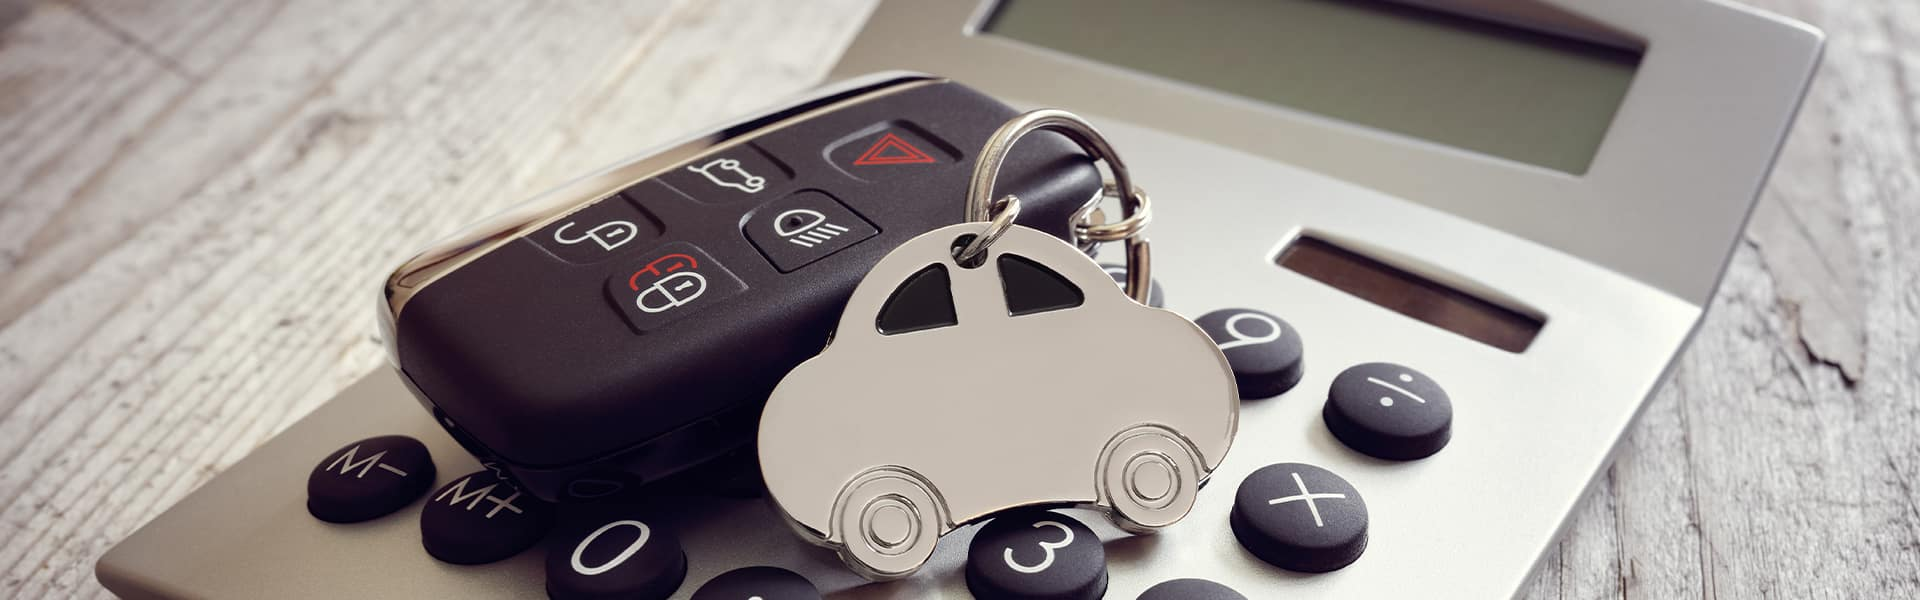 How APR is calculated in Lancaster at Lancaster Toyota | Car Keys and Calculator